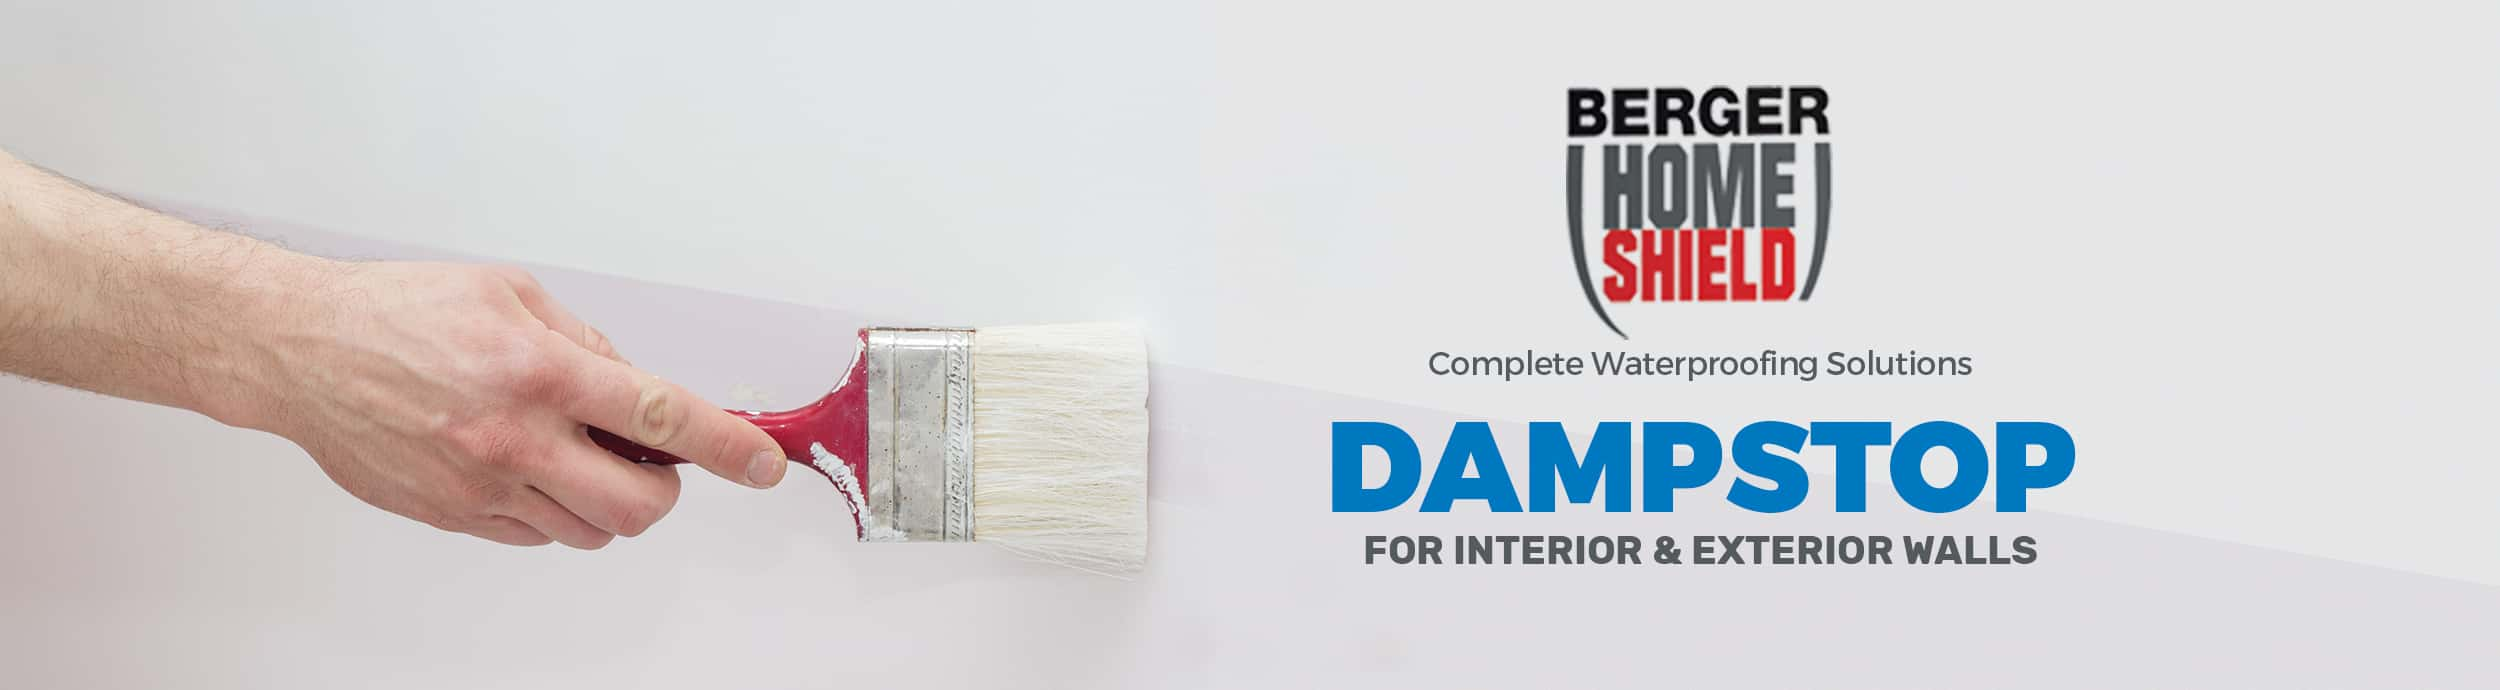 Waterproof coating for walls berger paints dampstop